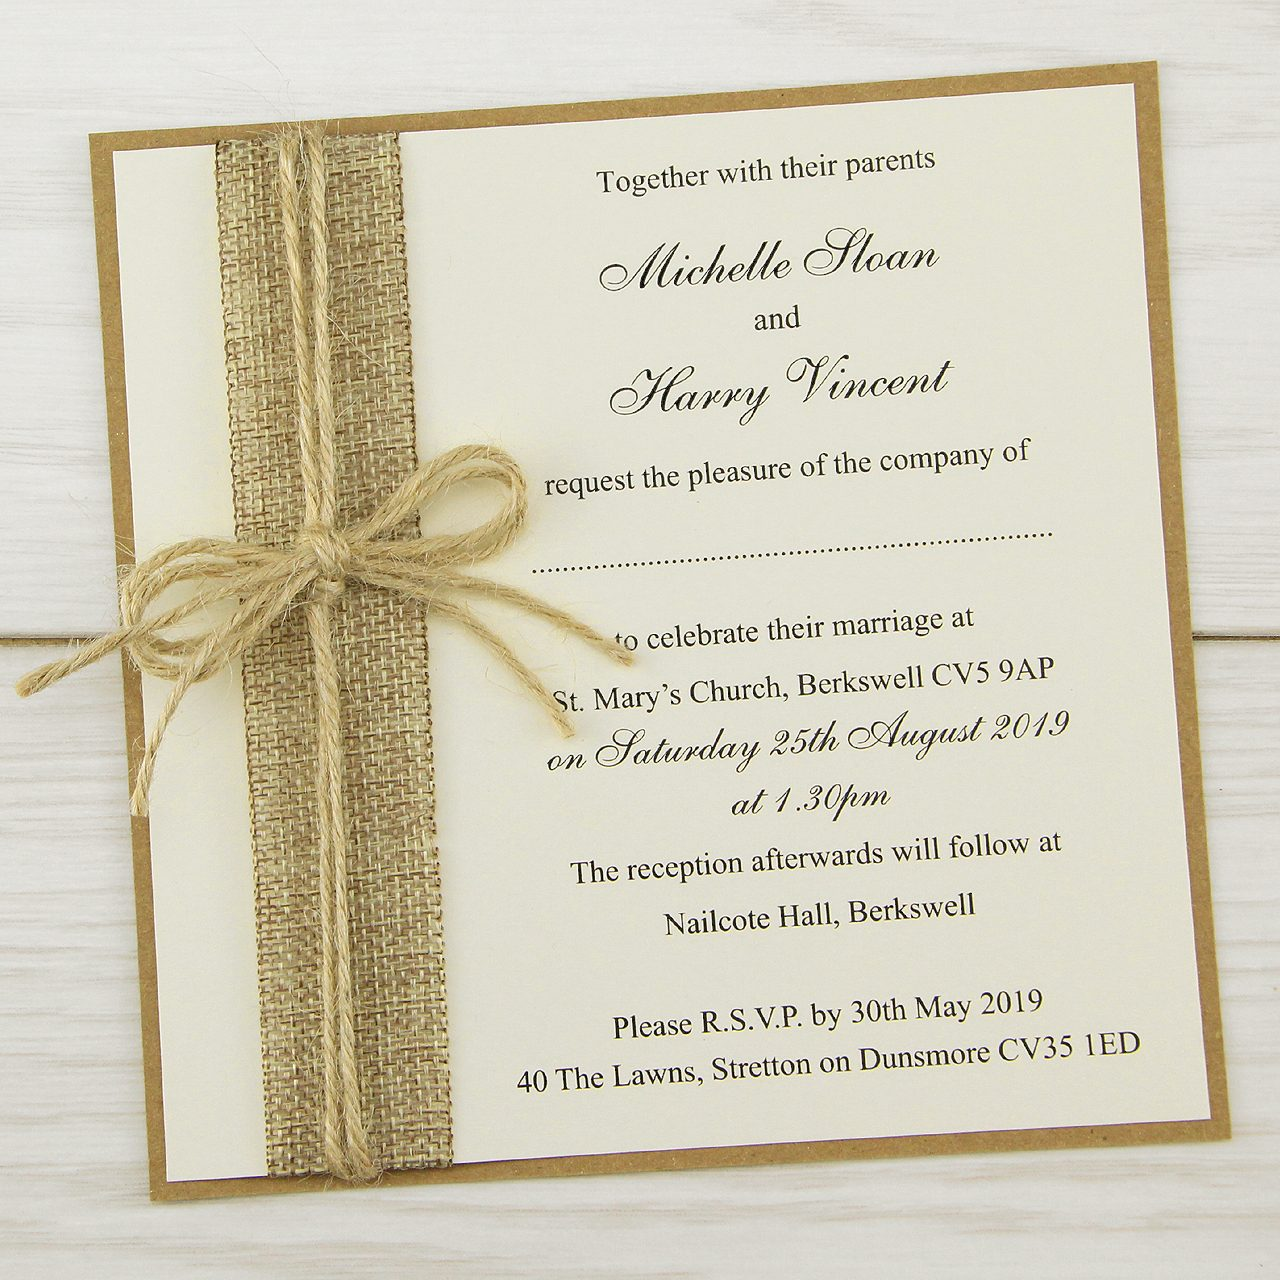 Best Wedding Invitations Cards: Rustic Burlap Layered Square Wedding Invitation